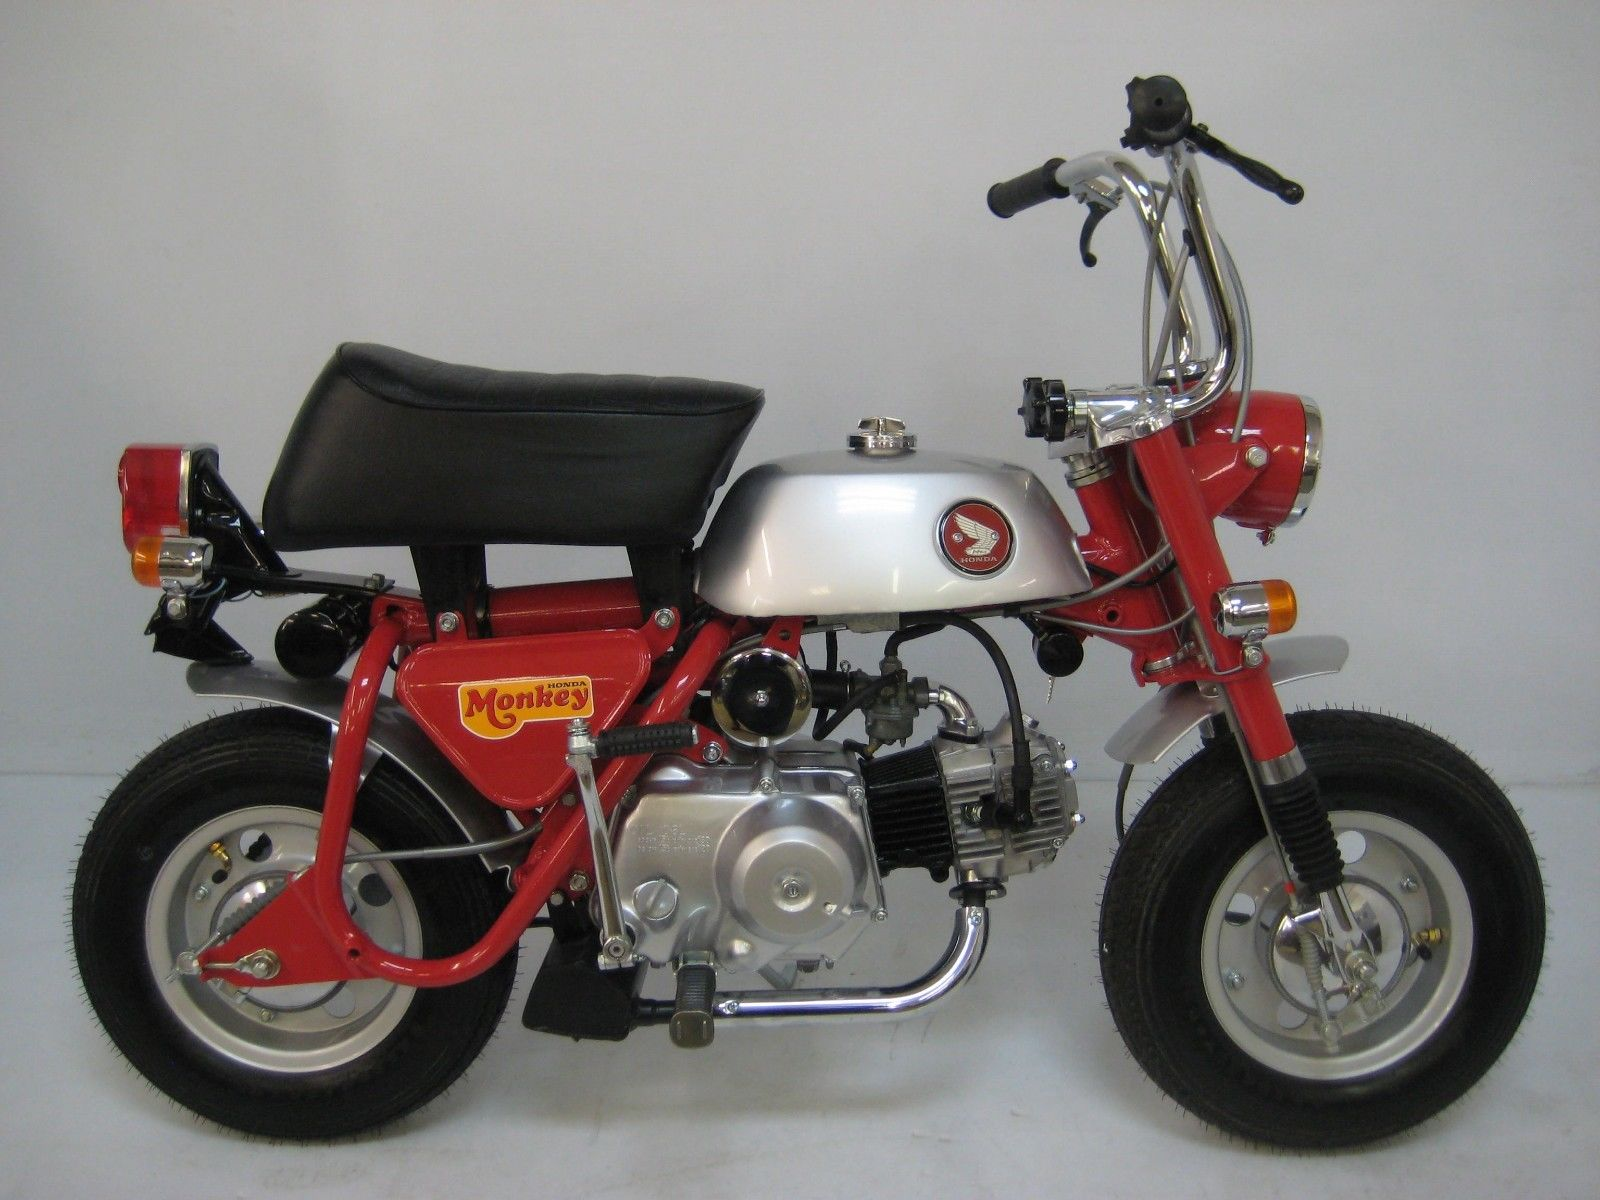 Jdm Honda Line 1969 Brochure Automotive Motorcycle 1971 50cc Dirt Bike Our Next Ad Is From 1973 And Features Mini Bikes Trail